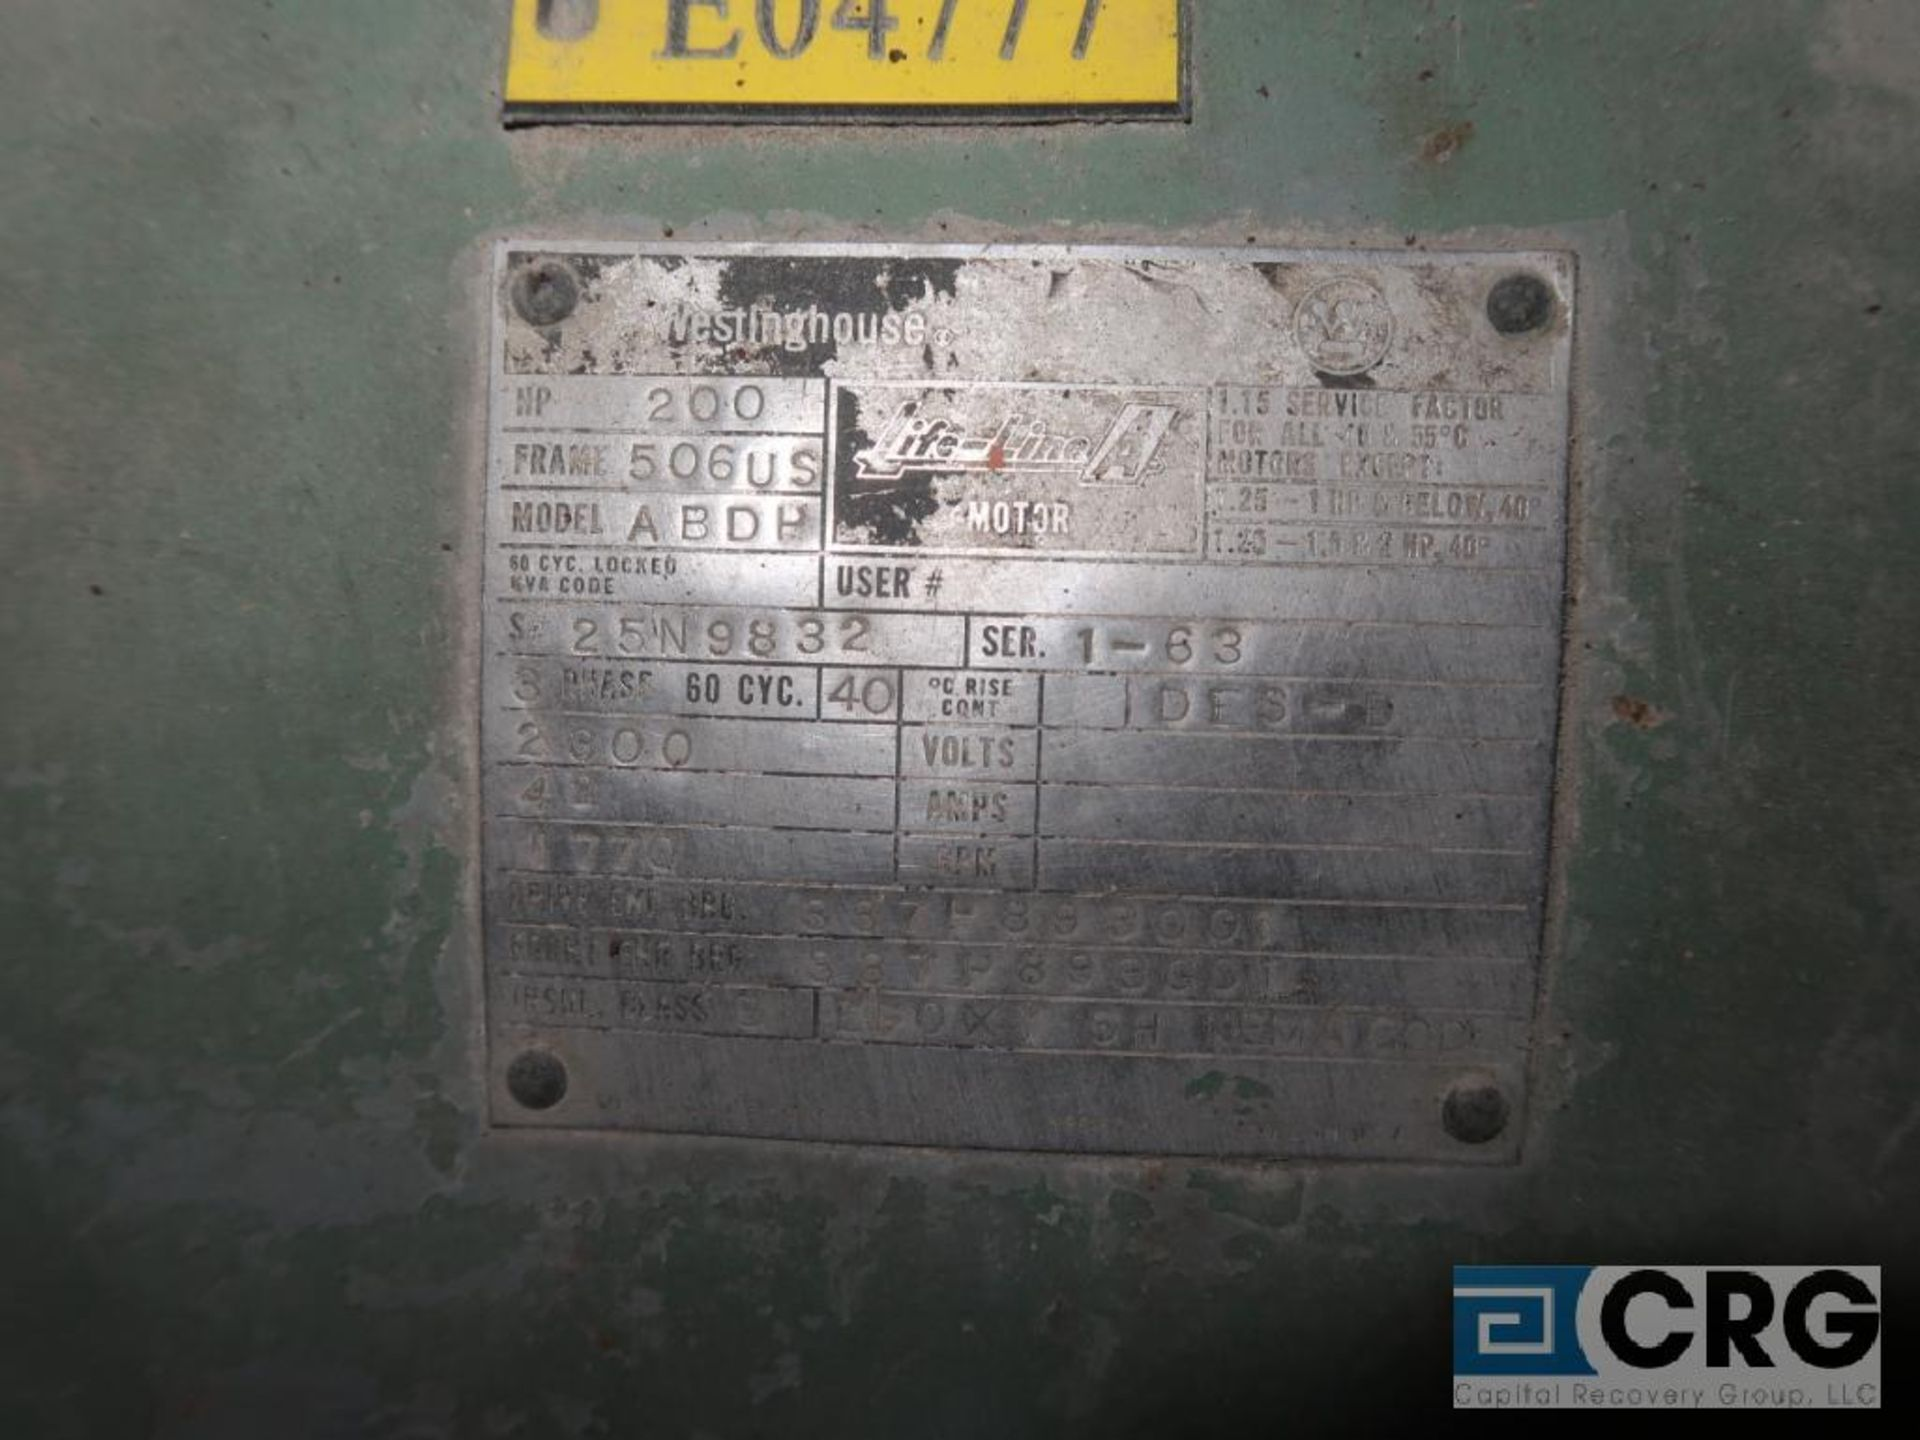 Westinghouse motor, 200 HP, 1,770 RPM, 2,300 volts, frame 506US, equipment #E04777 (496 Dock Area) - Image 2 of 2